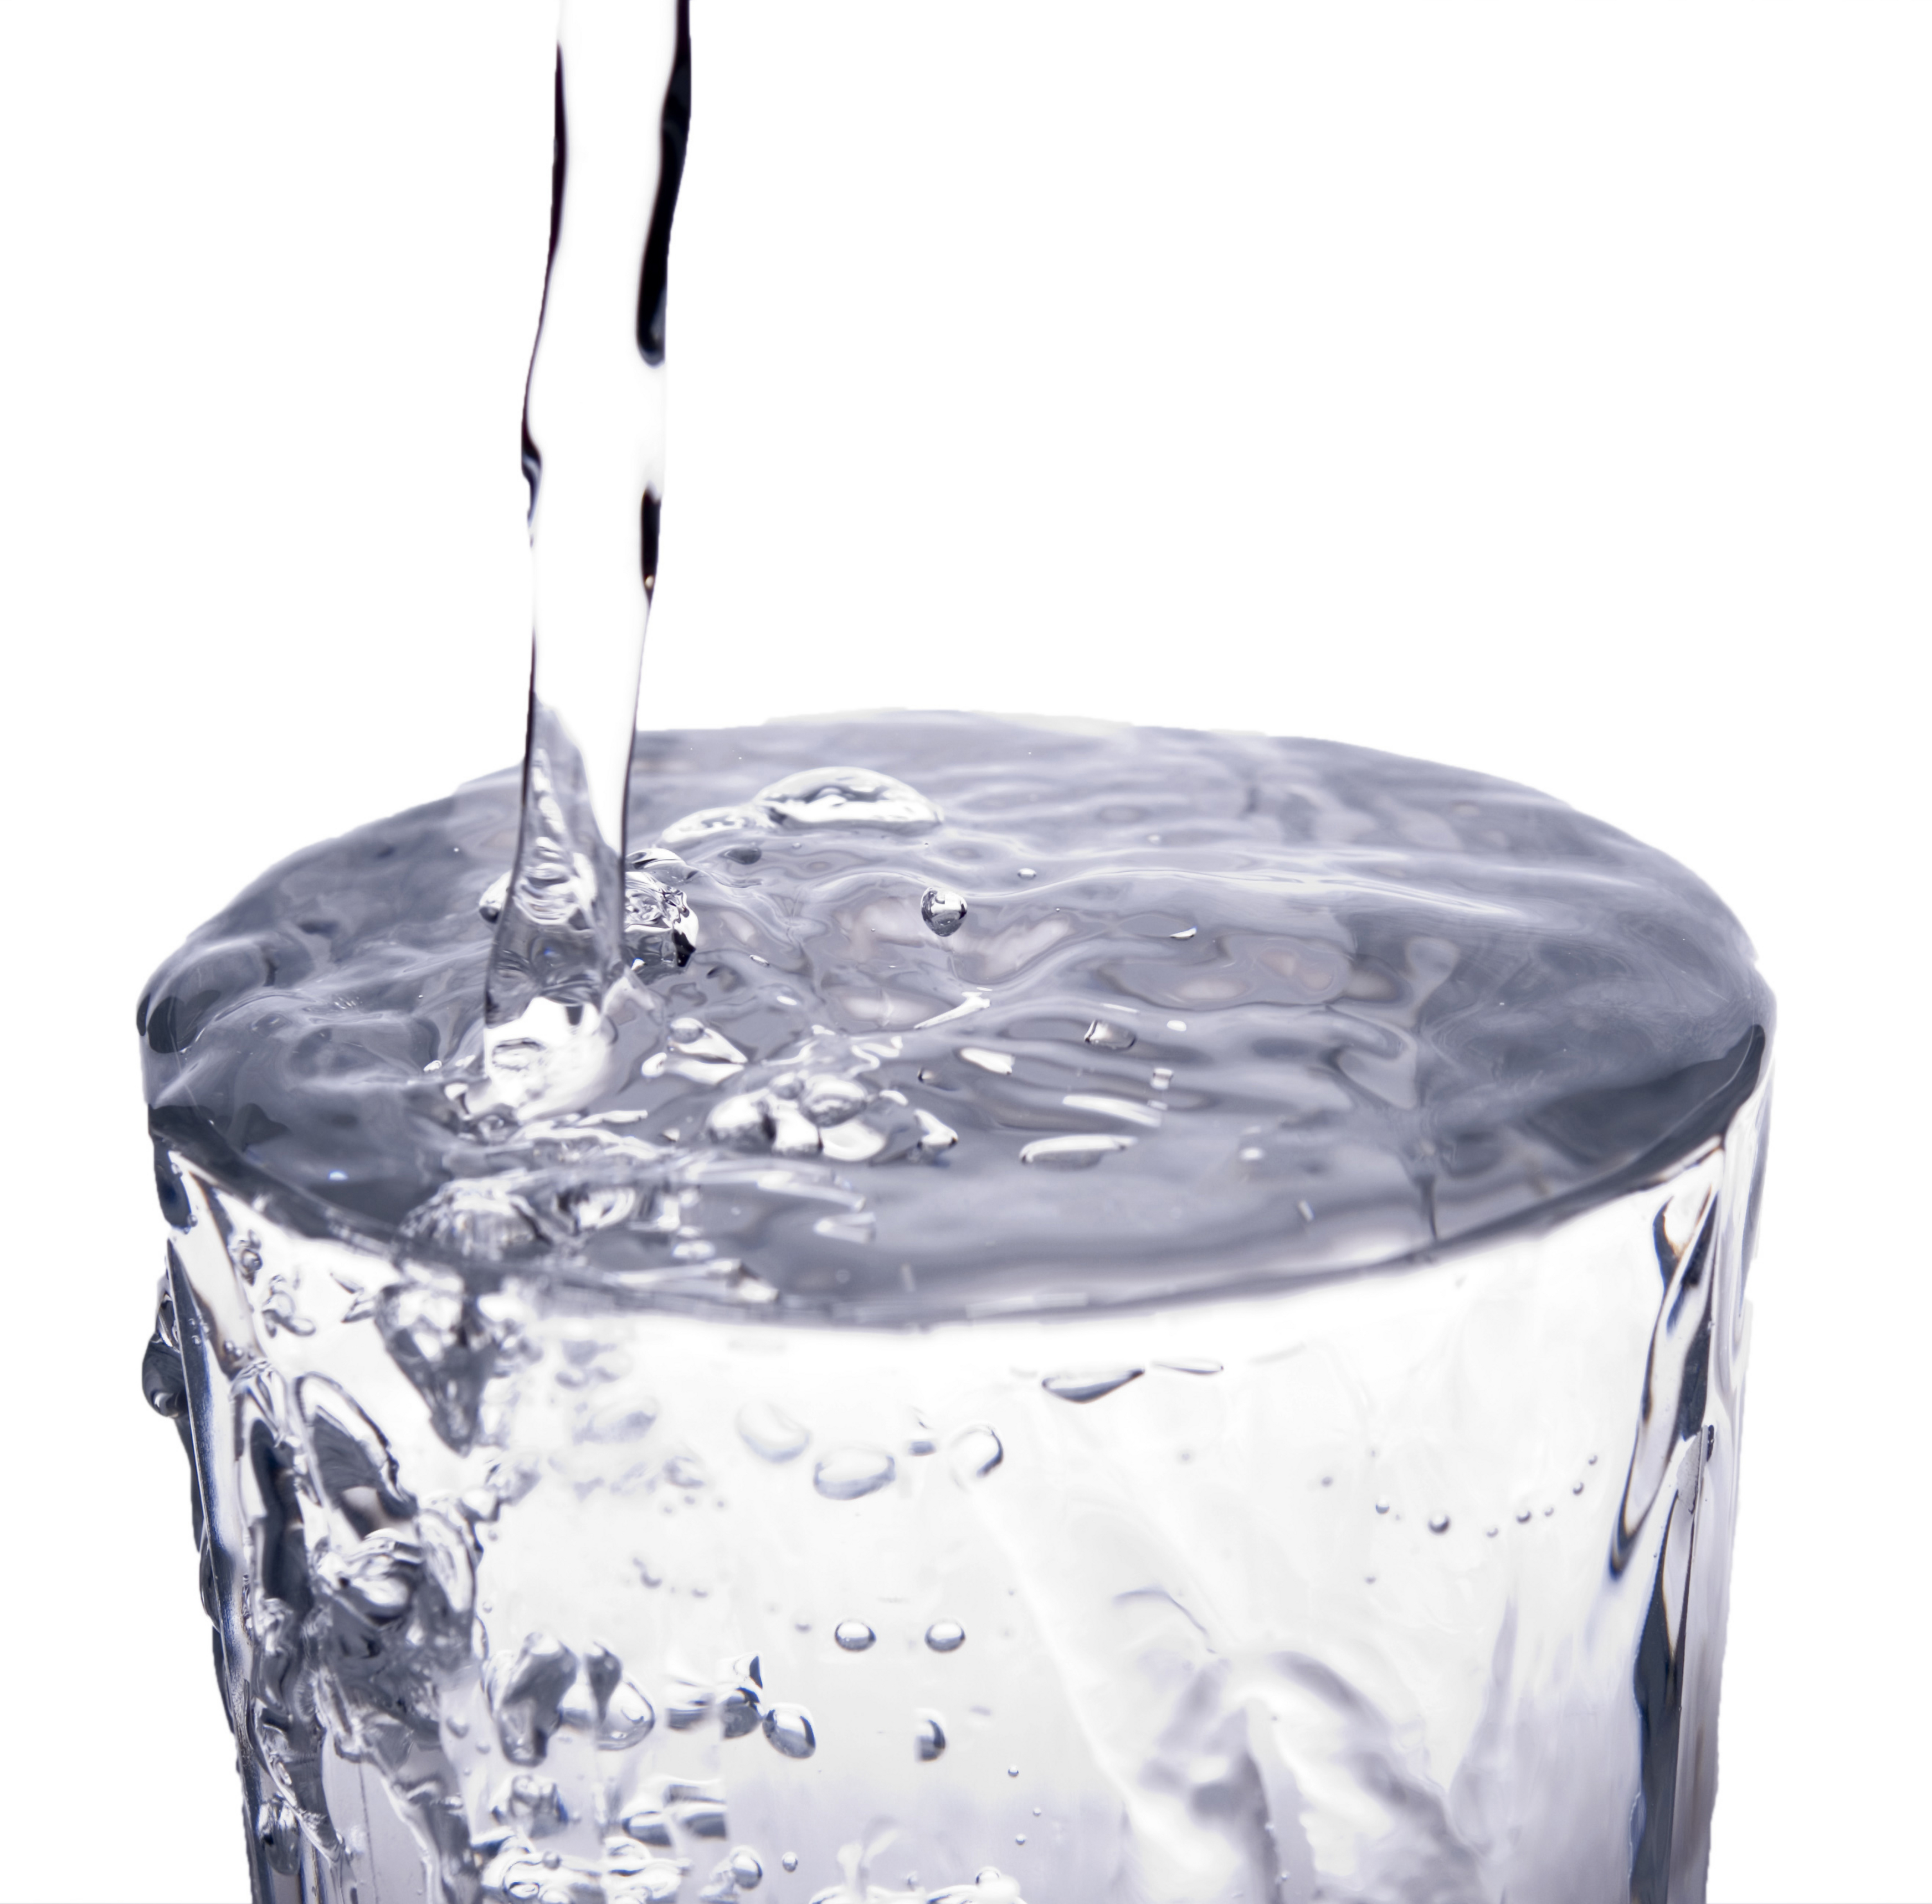 A photo of overflowing glass of water - Canon EOS 400d